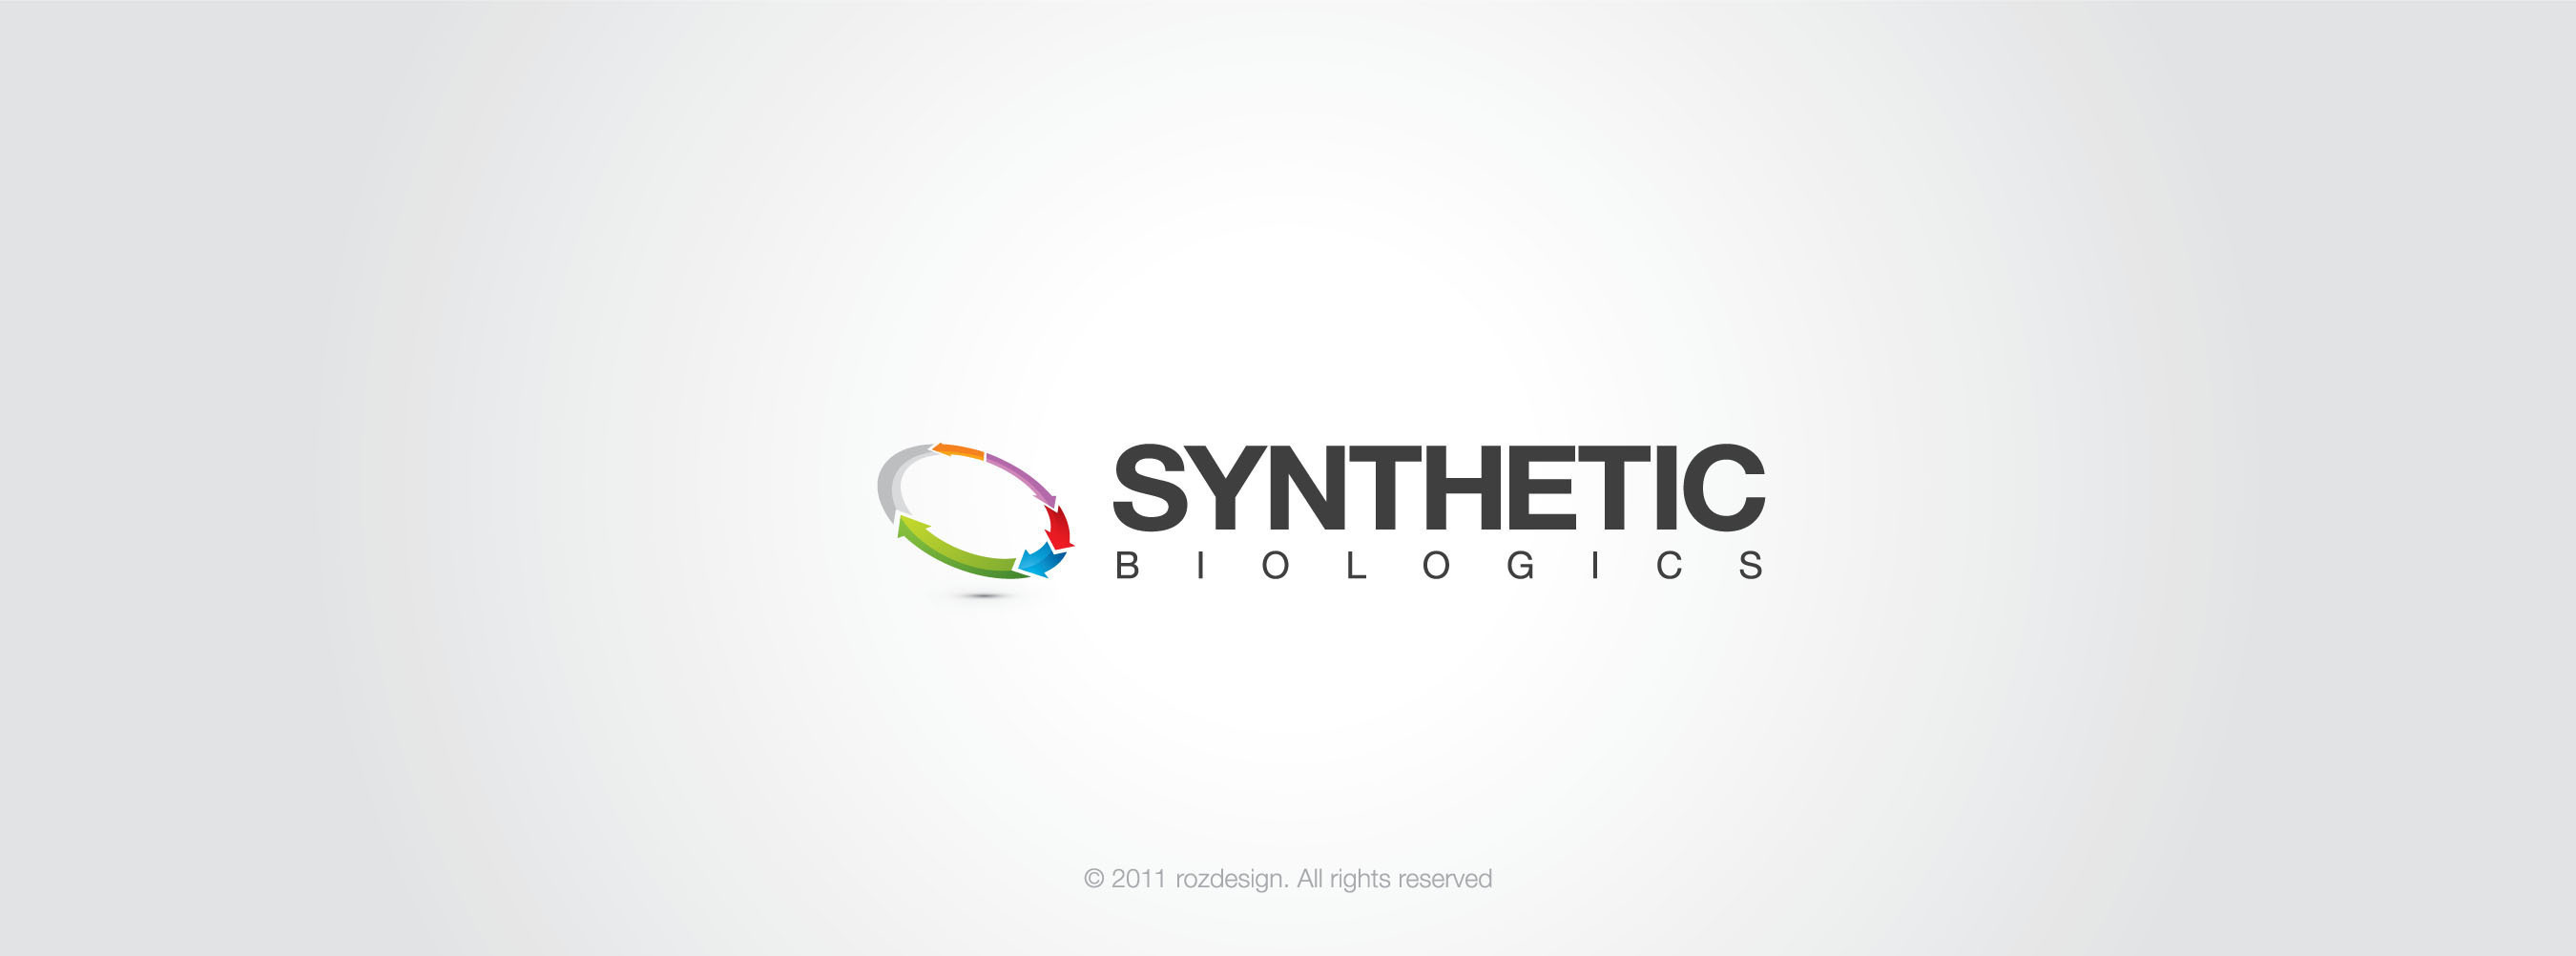 Synthetic Biologics, Inc. Logo